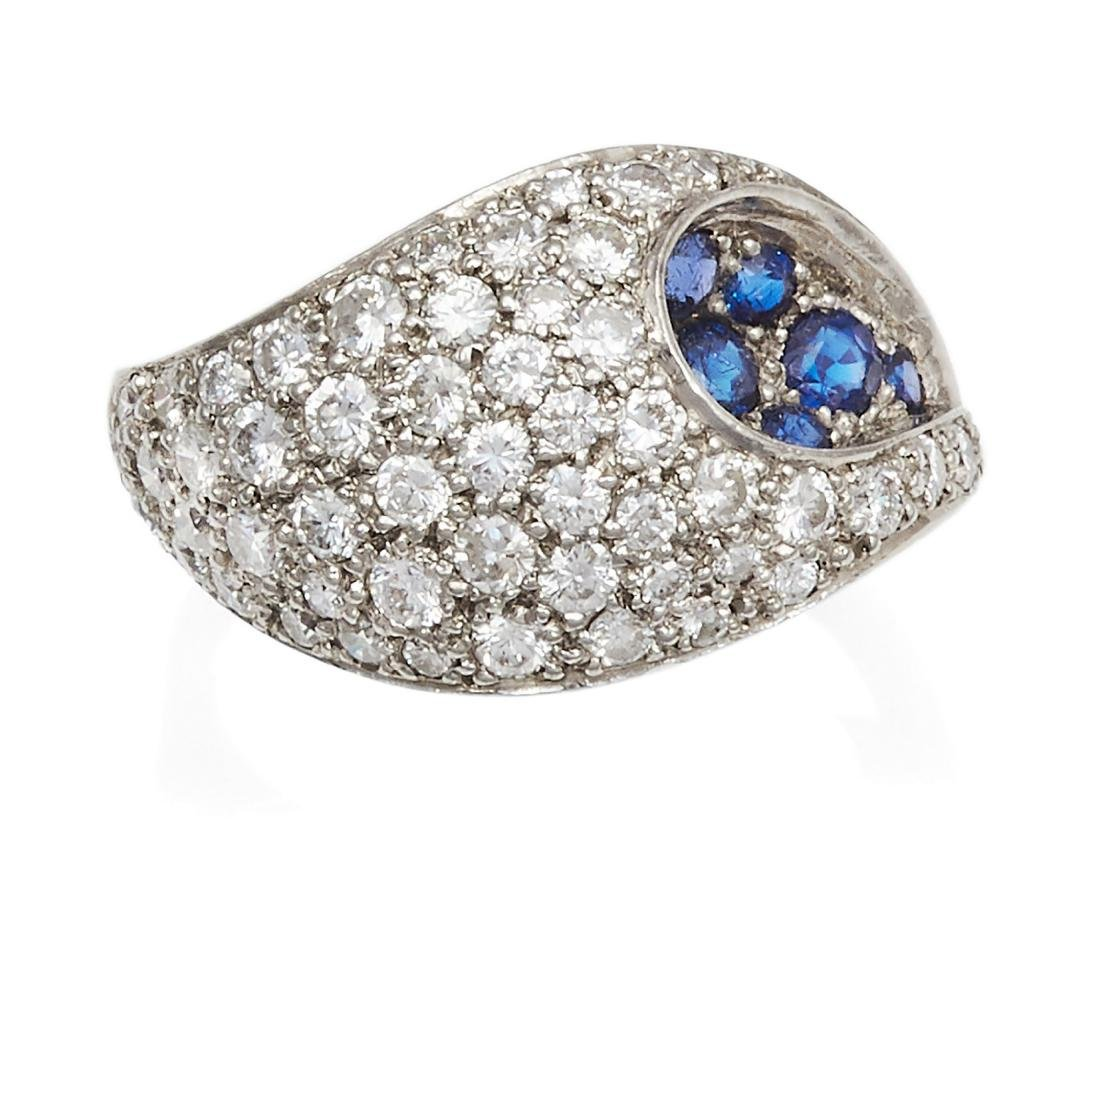 A SAPPHIRE AND DIAMOND DRESS RING in white gold or